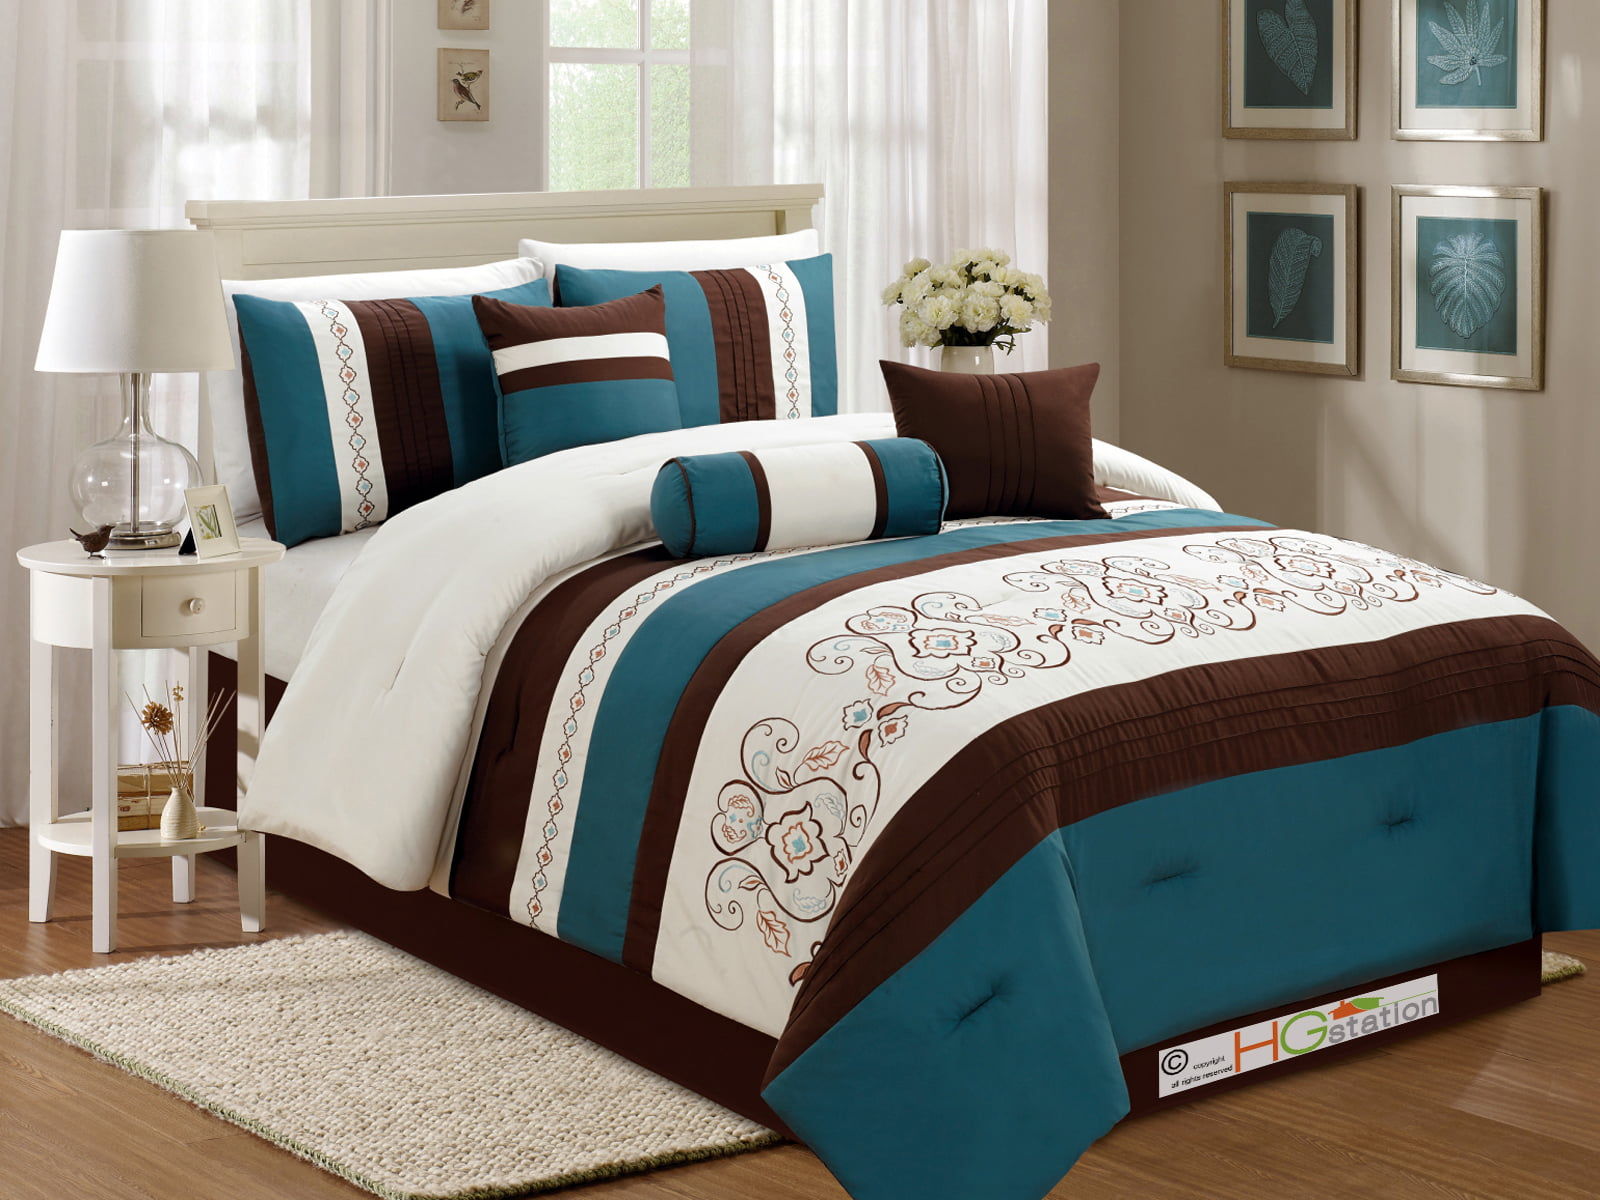 11 Pc Fl Scroll Damask Embroidery Piping Comforter Curtain Set Teal Blue Green Brown Ivory Queen